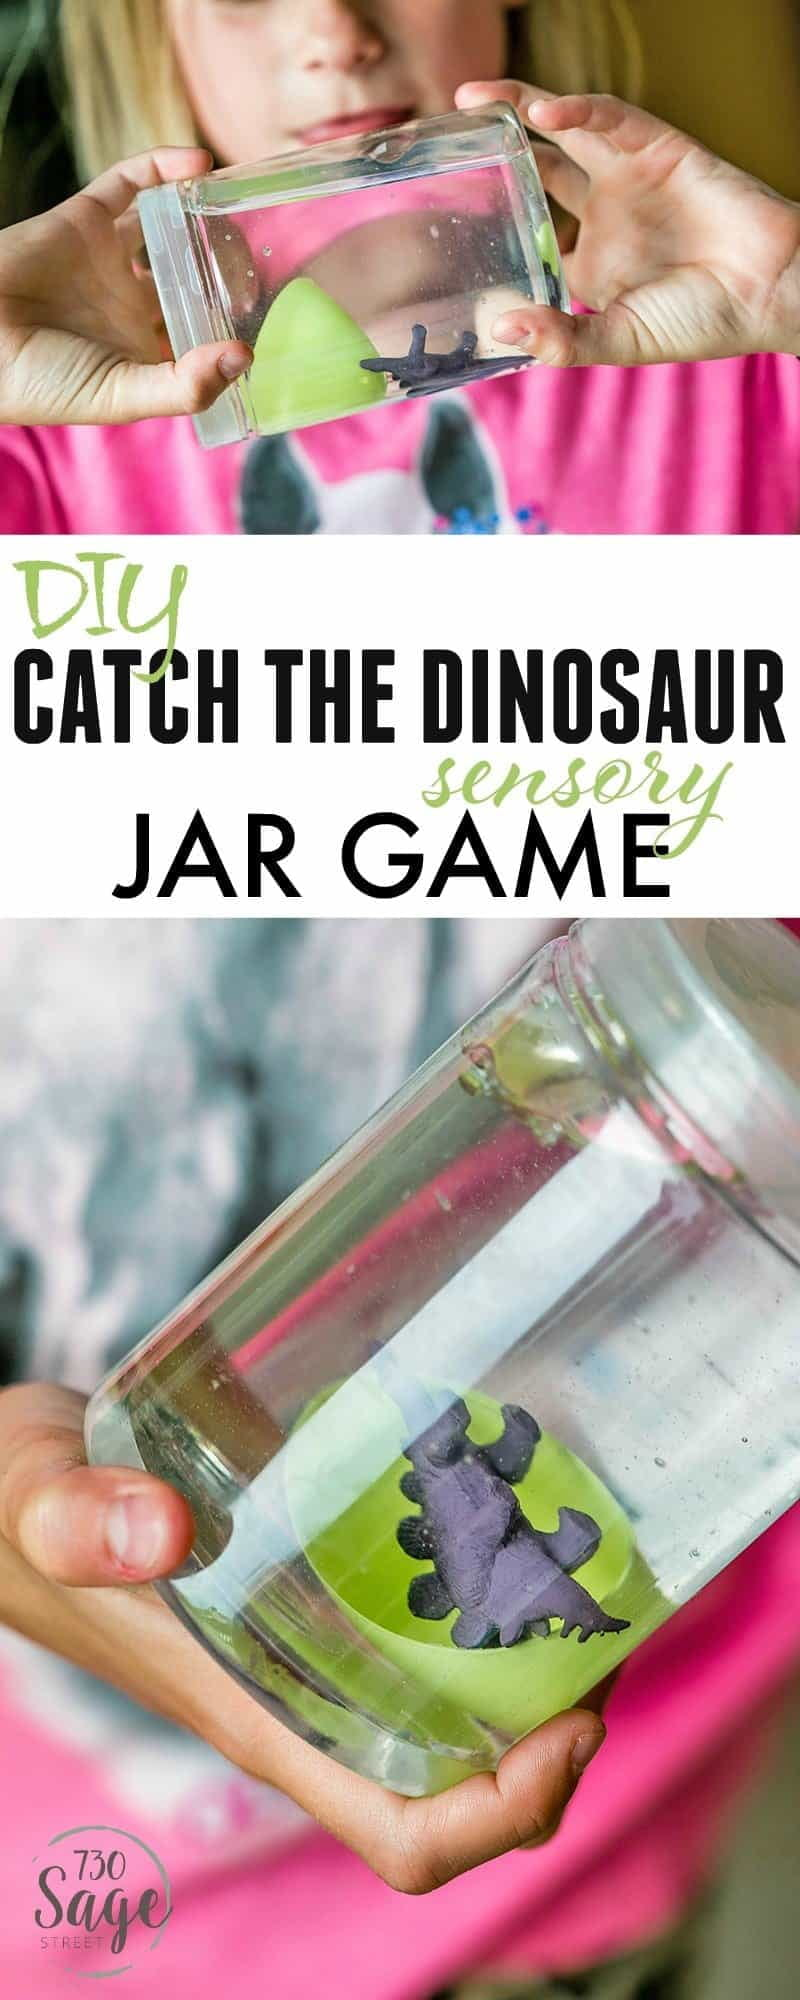 Dinosaur Preschool Crafts help engage imaginations and keep kids busy. This DIY Catch The Dinosaur Sensory Jar Game is easy to make and is super fun!